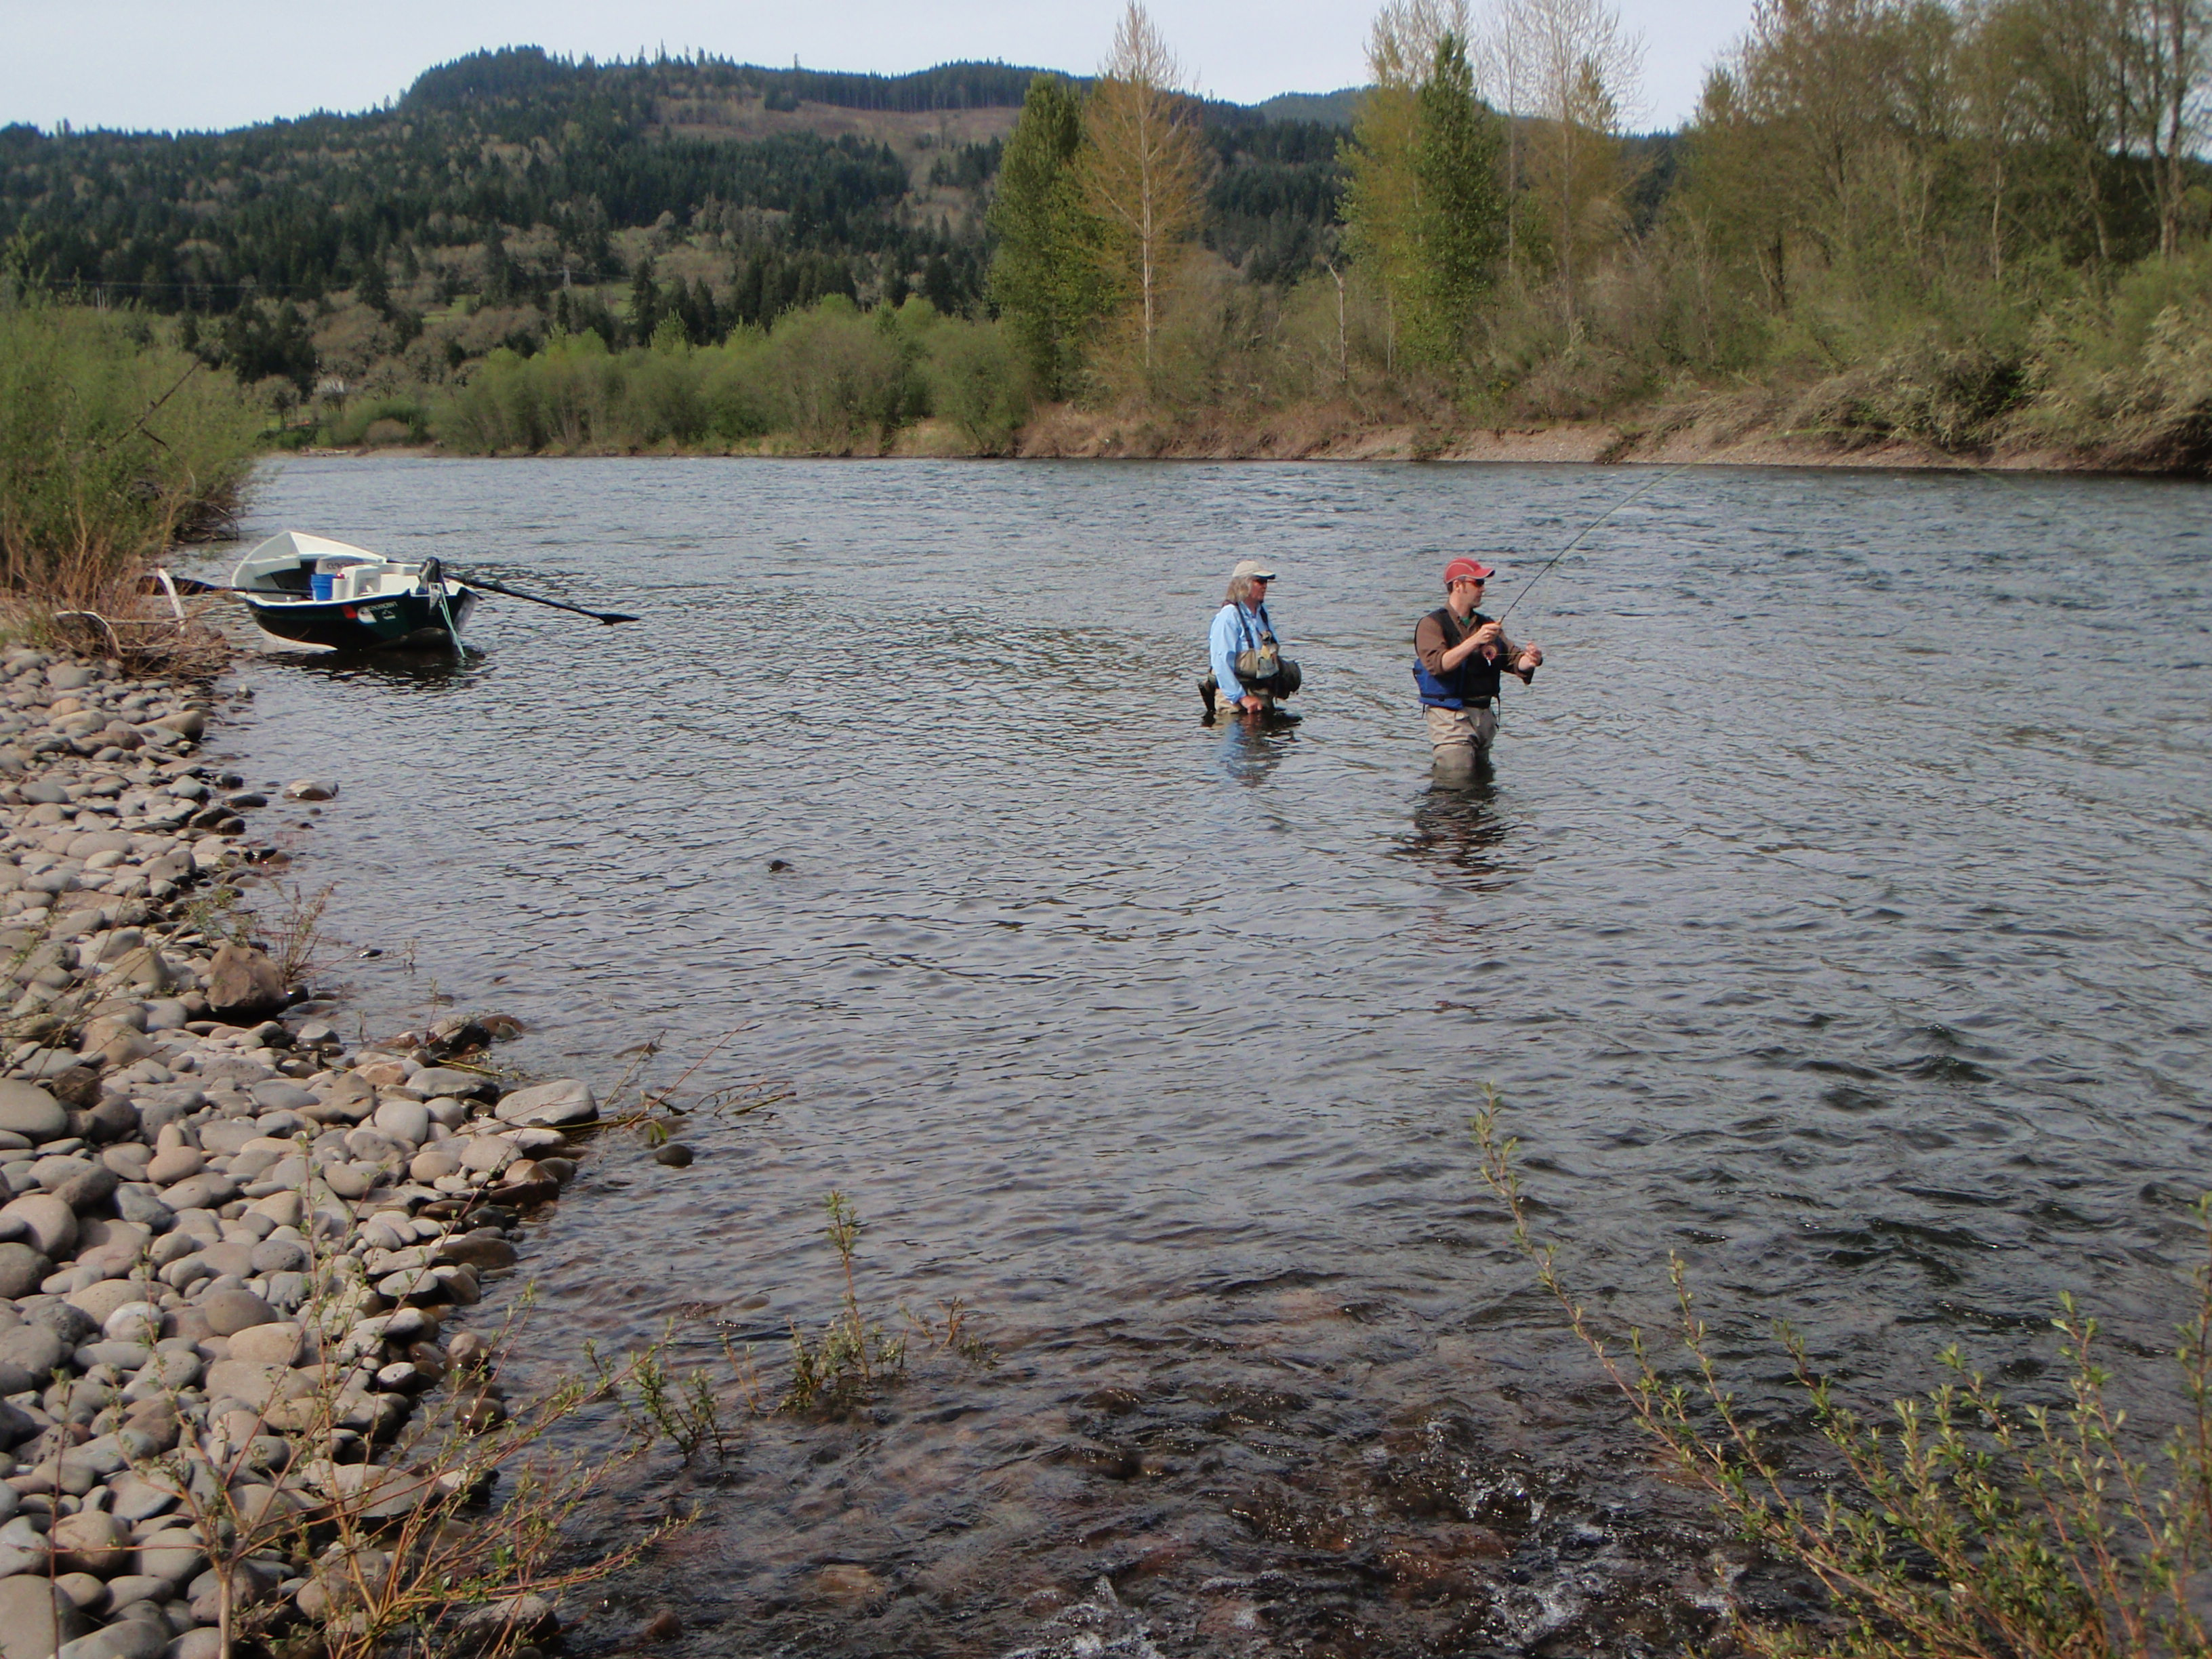 Guiding on the mckenzie river fly fishing pursuits for Mckenzie river fishing